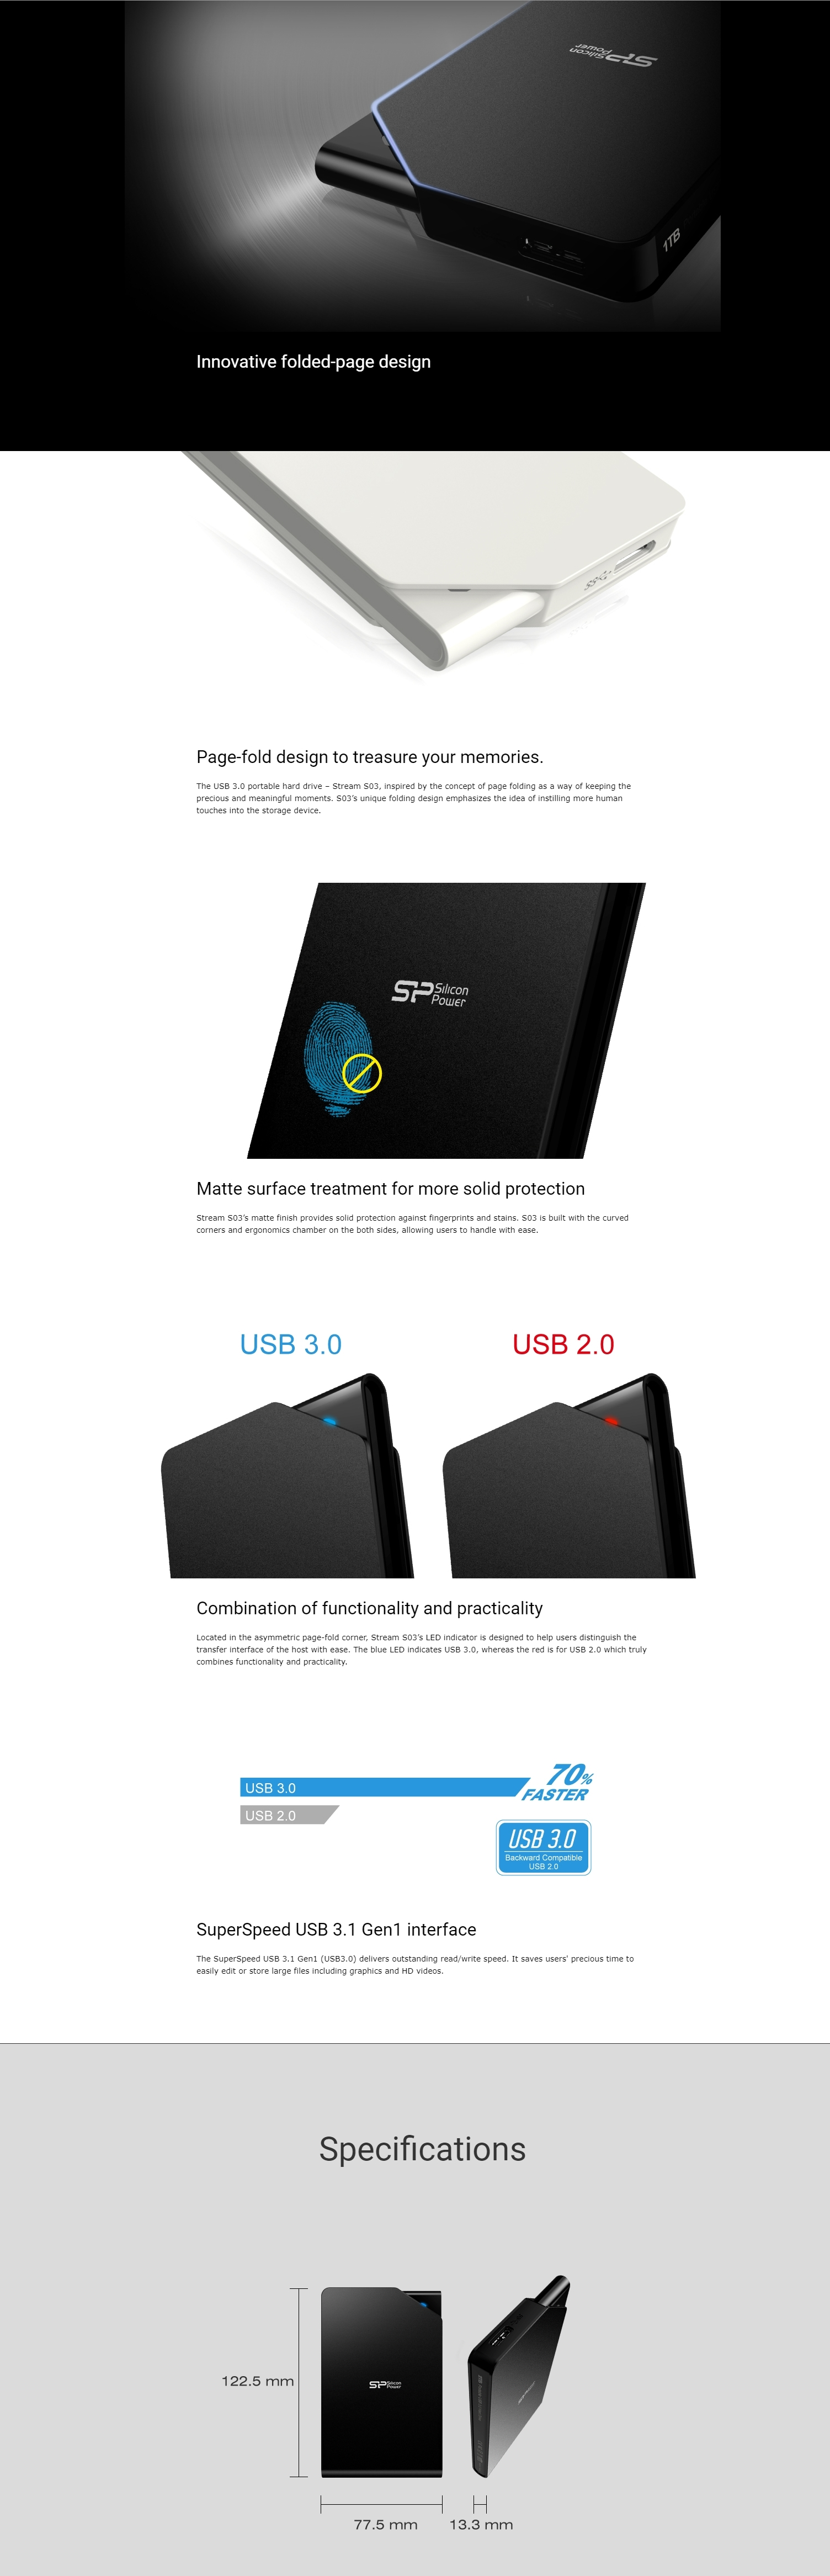 A large marketing image providing additional information about the product Silicon Power Stream S03 1TB USB3.0 External Hard Drive  - Additional alt info not provided